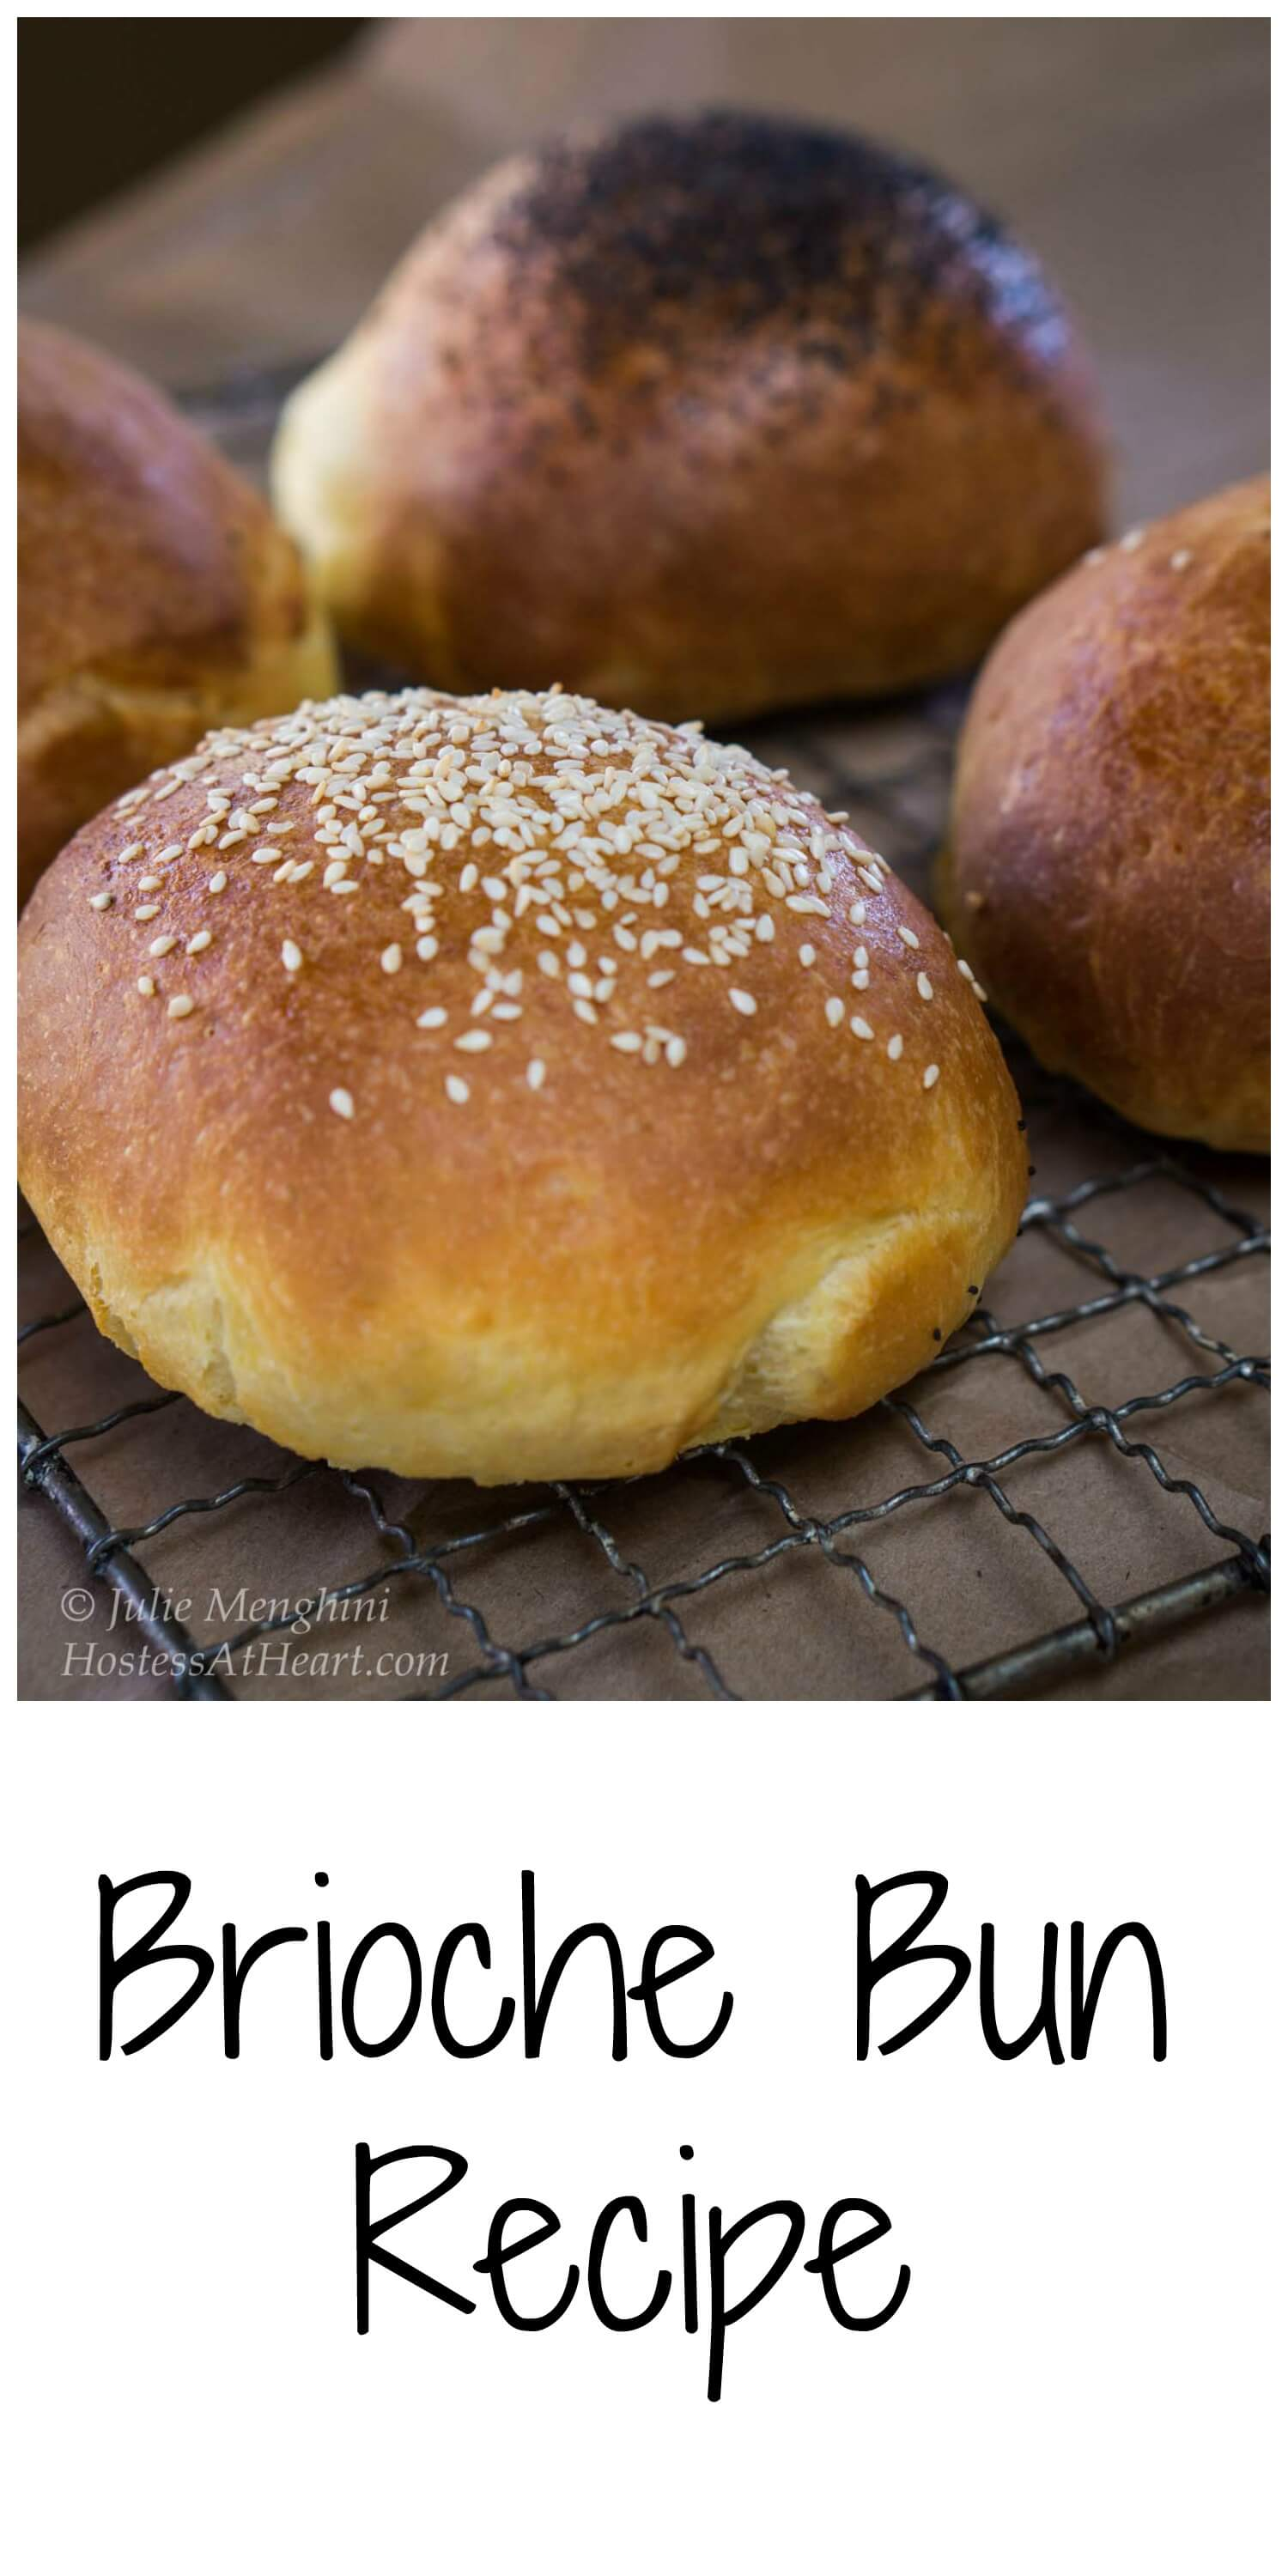 A Brioche Bun recipe that makes a soft and buttery bun that is strong enough to stand up to the heartiest of sandwiches or burgers.